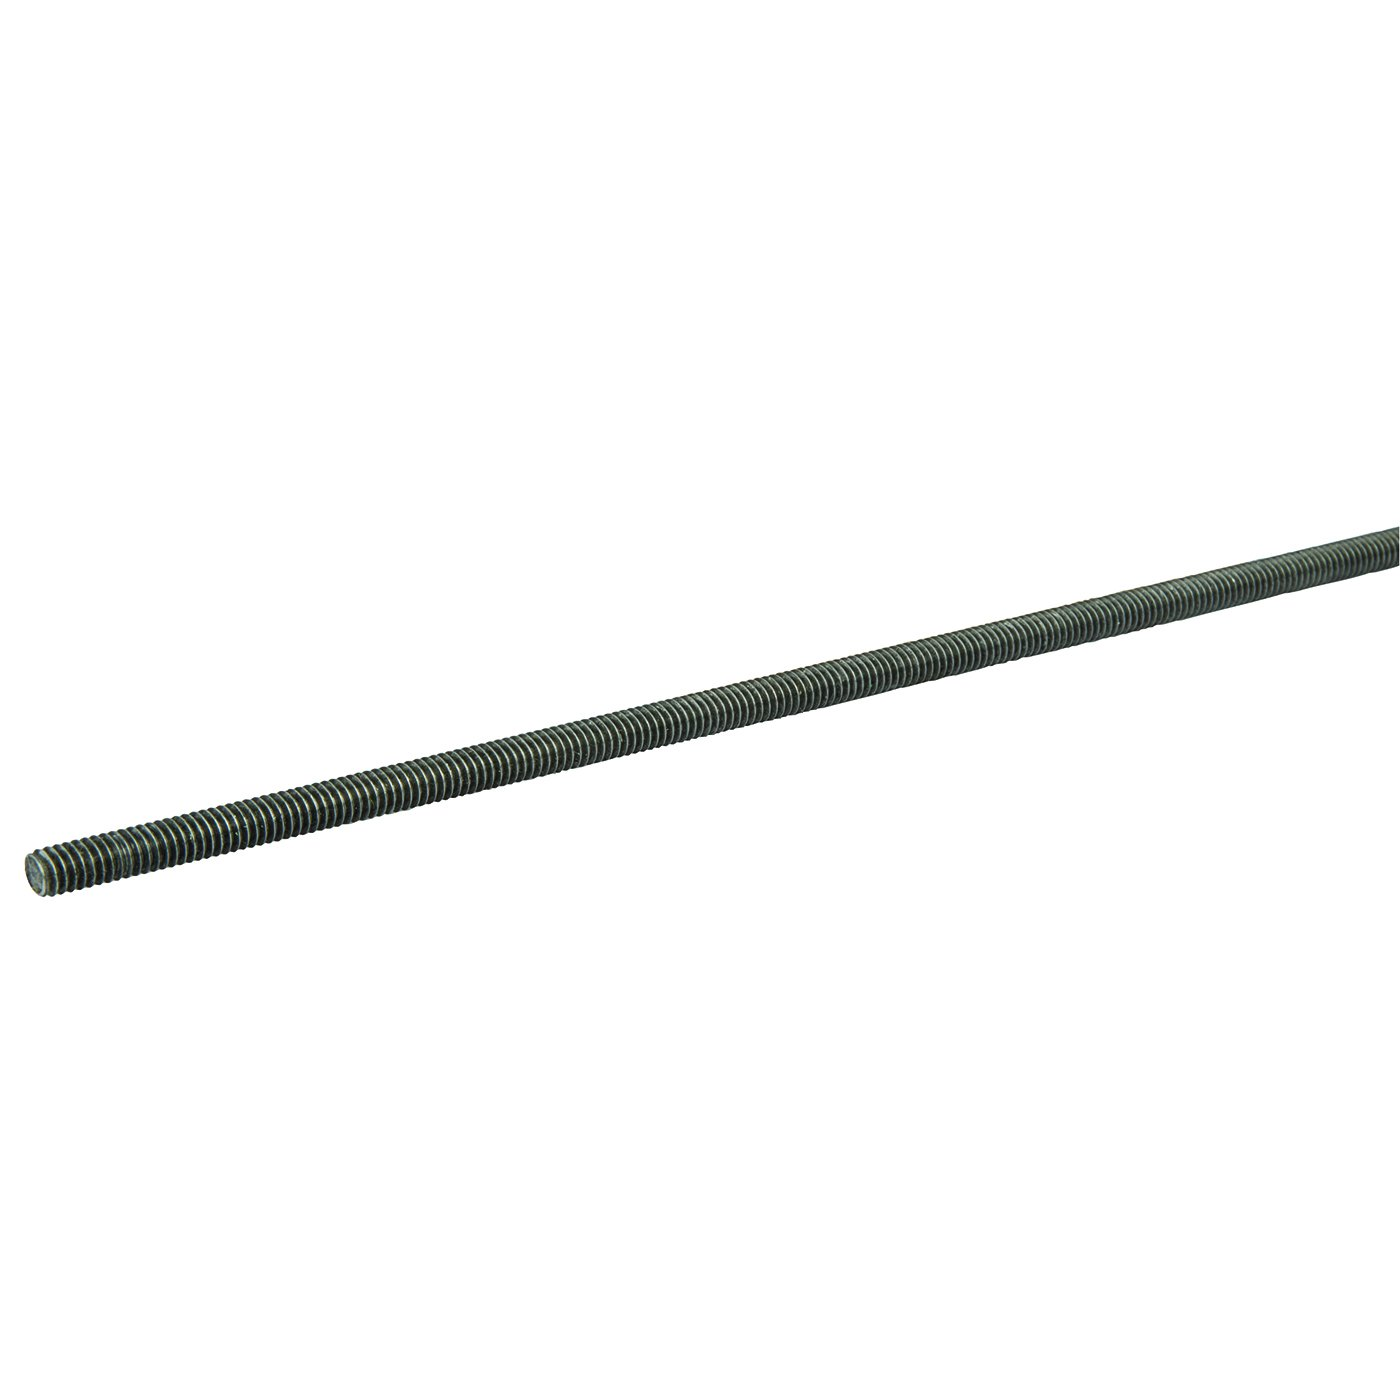 Low-Strength Steel Threaded Rod 3 Feet Long 5//8-18 Thread Size All America Threaded Products 21308 5//8-18 Thread Size